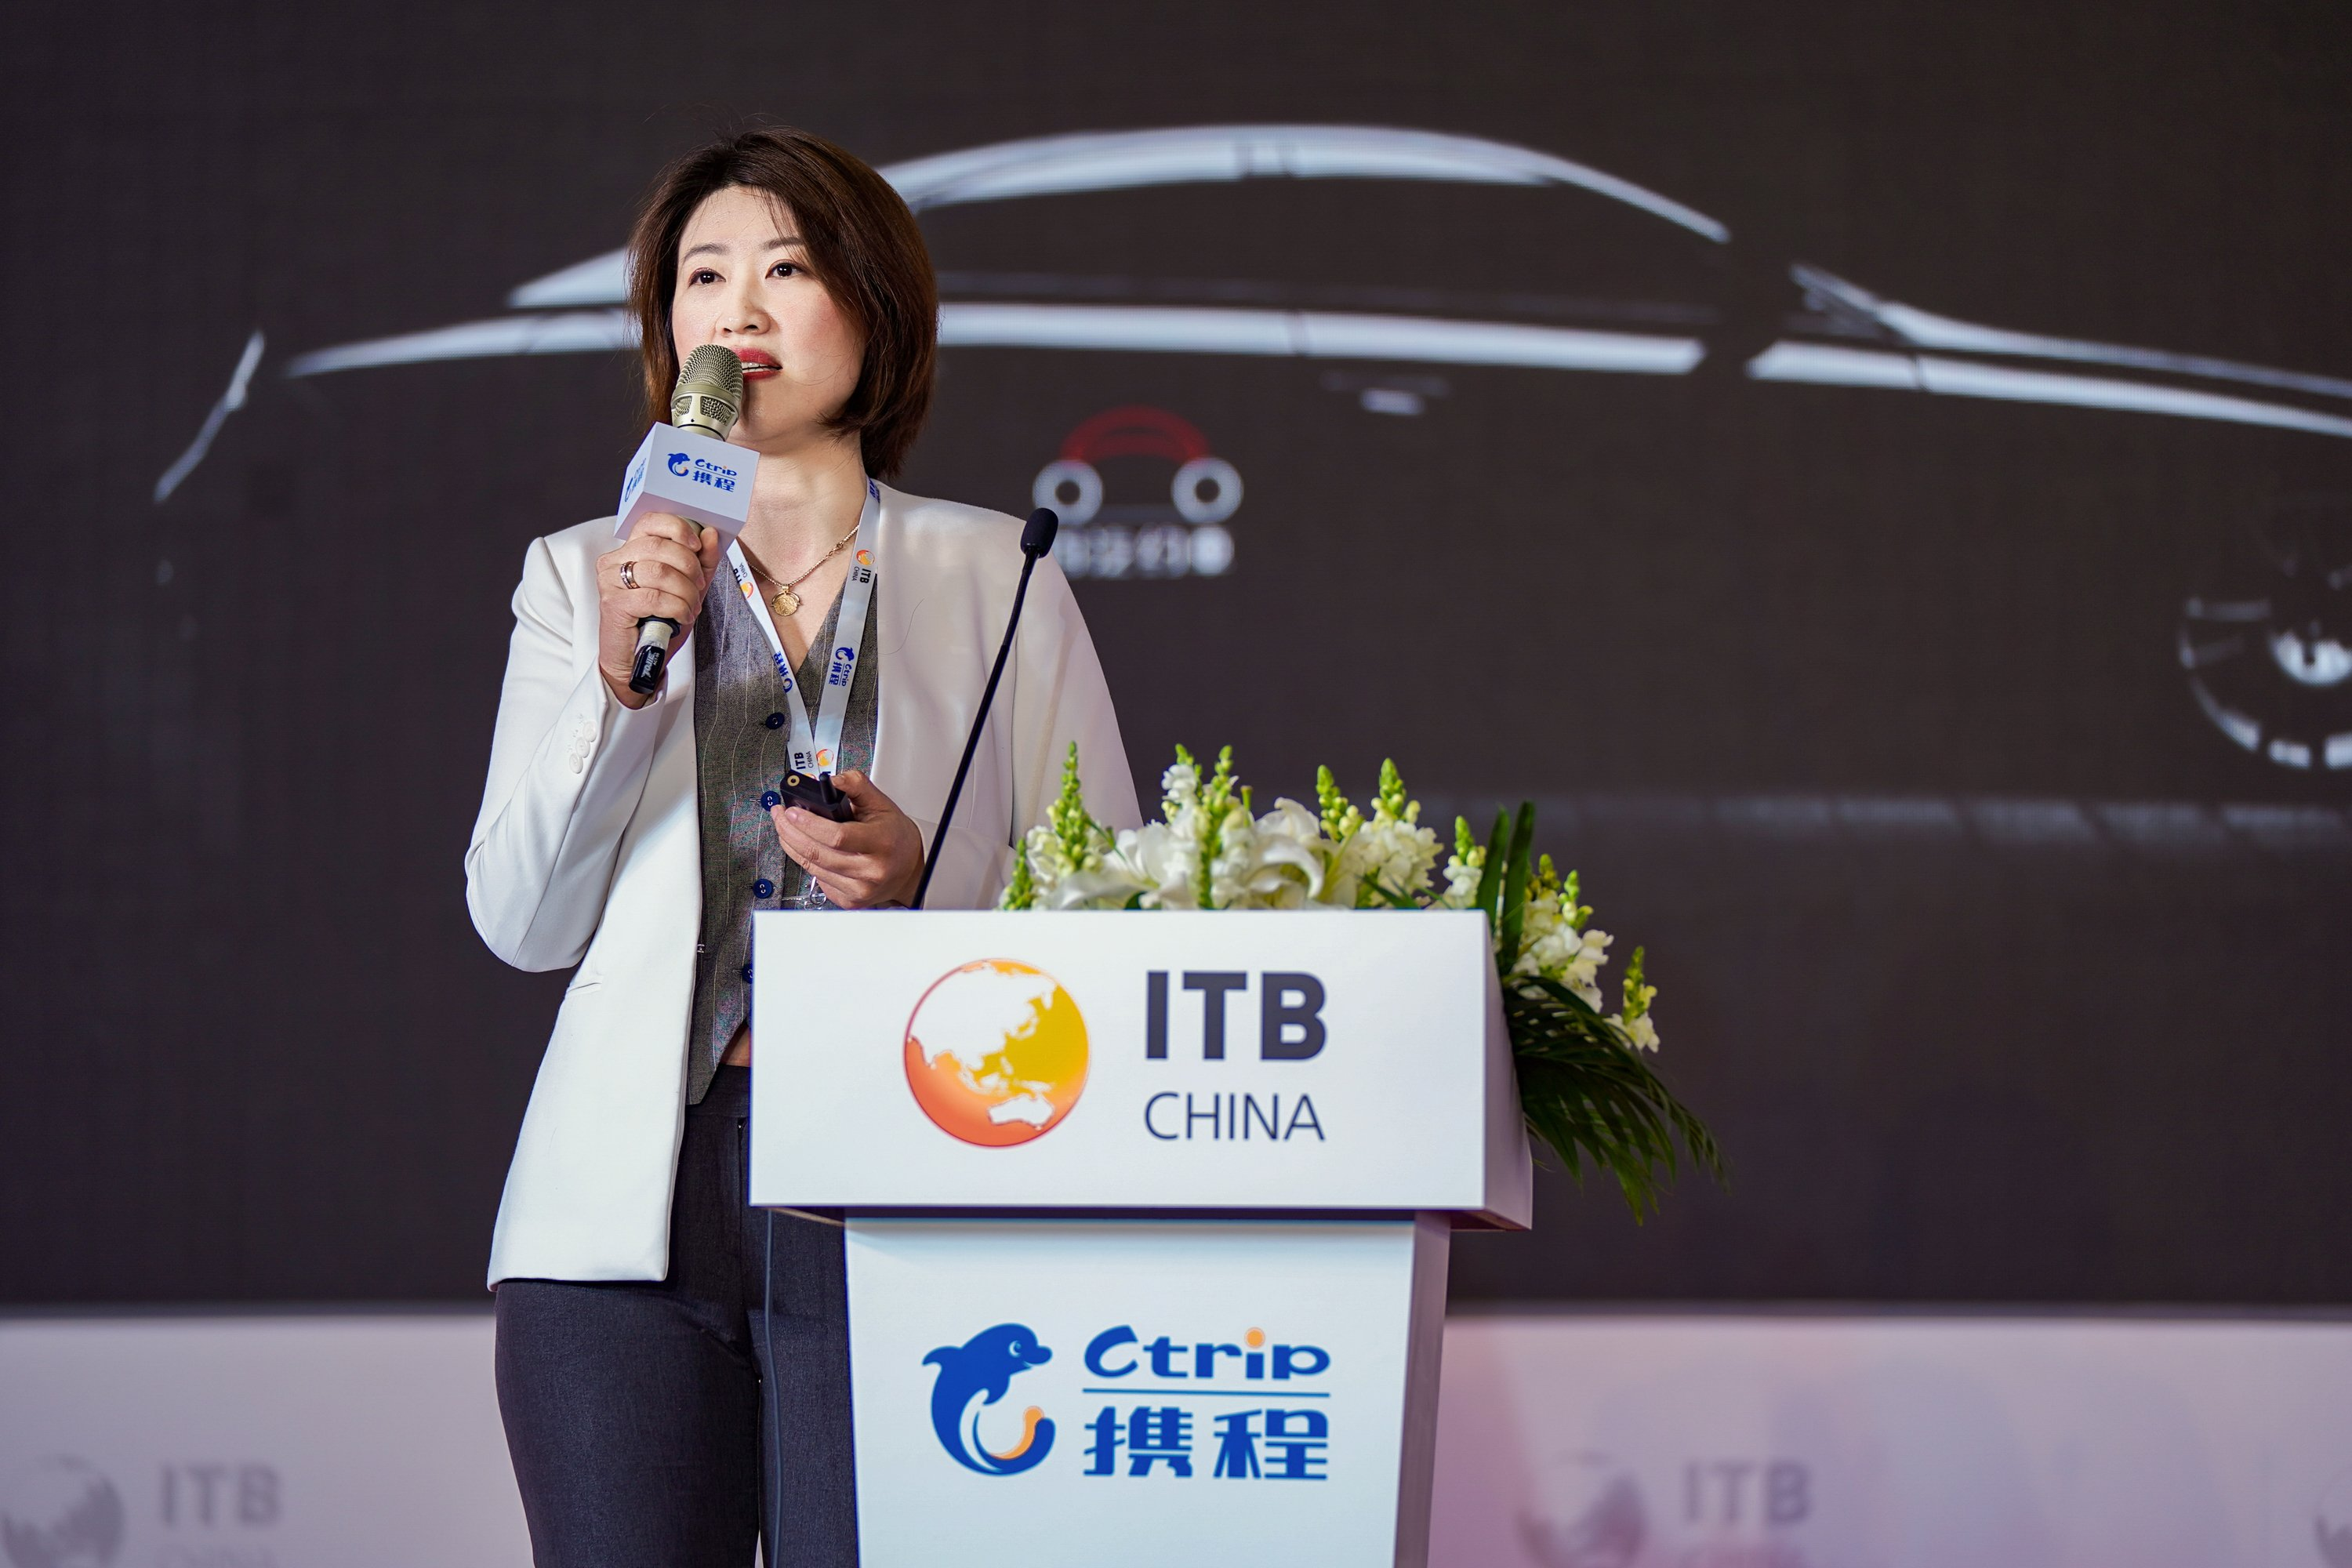 Cara Wang, CFO of Shouqi Limousine & Chauffeur